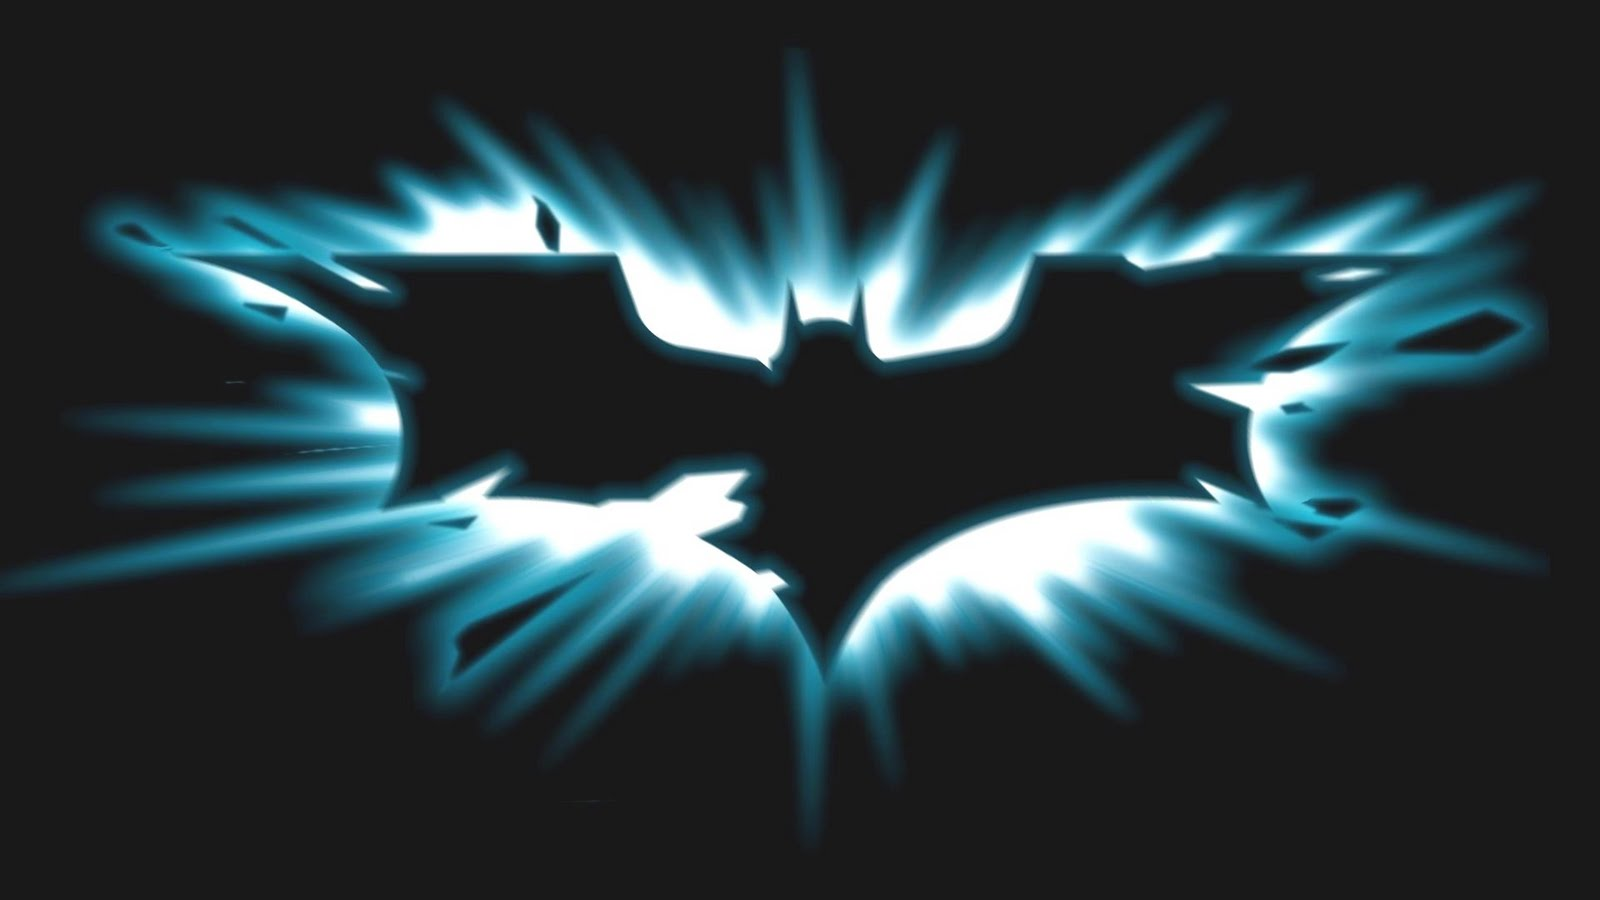 My Logo Pictures: Batman Logos